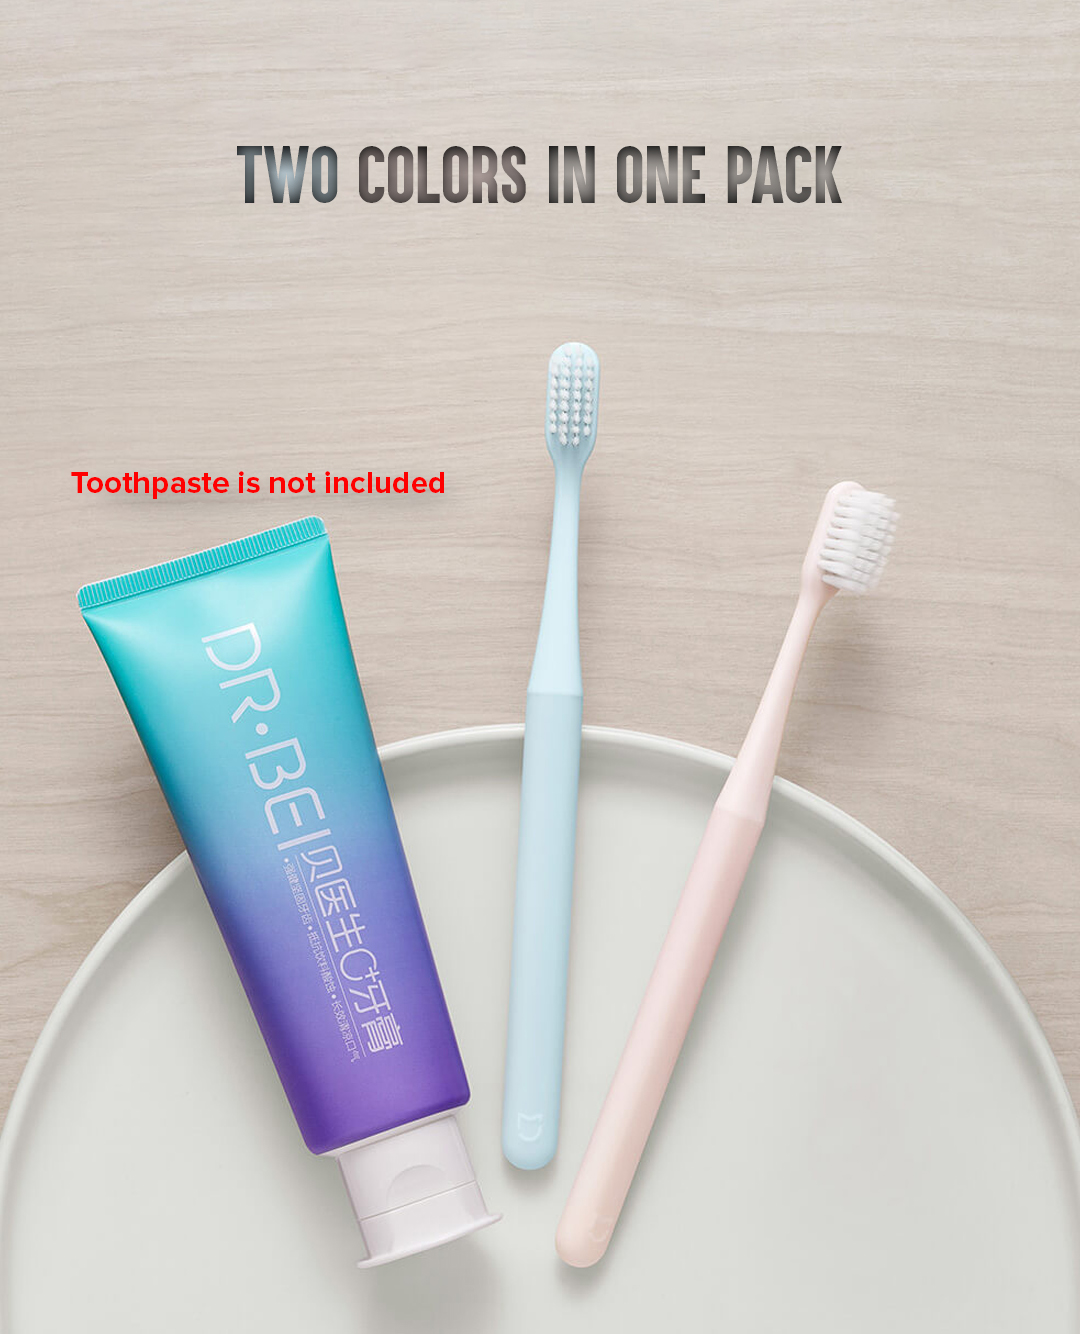 Mijia Toothbrush 2 colors pink and blue